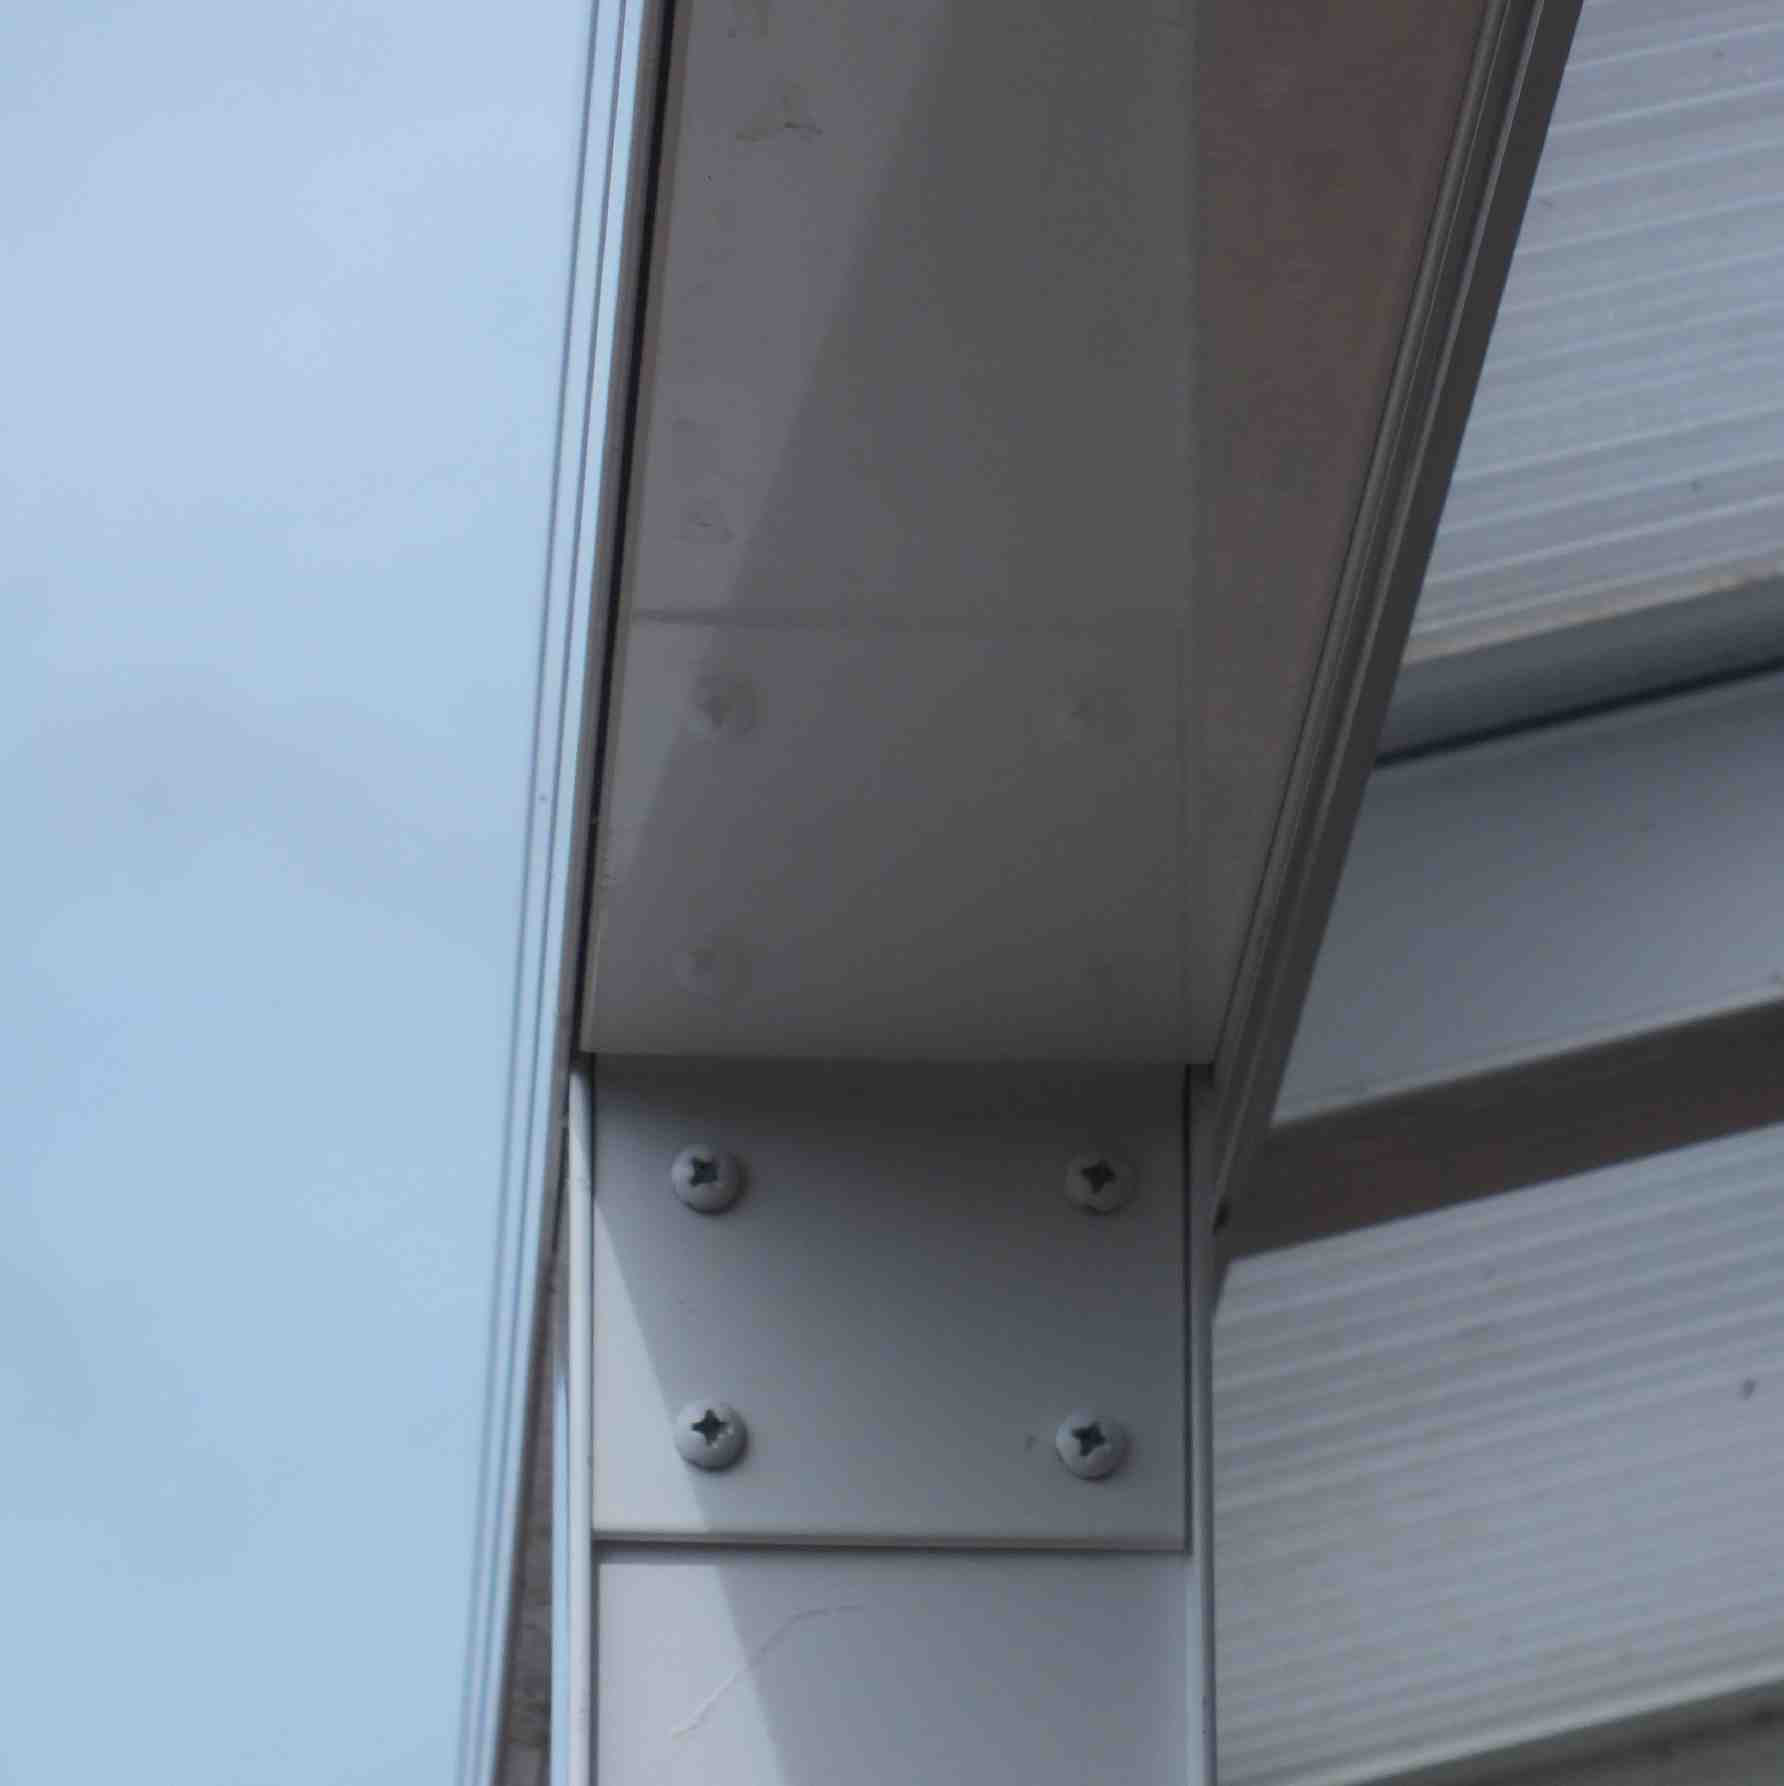 Affordable Omega Verandah with 16mm Polycarbonate Glazing - 11.2m (W) x 4.5m (P), (5) Supporting Posts